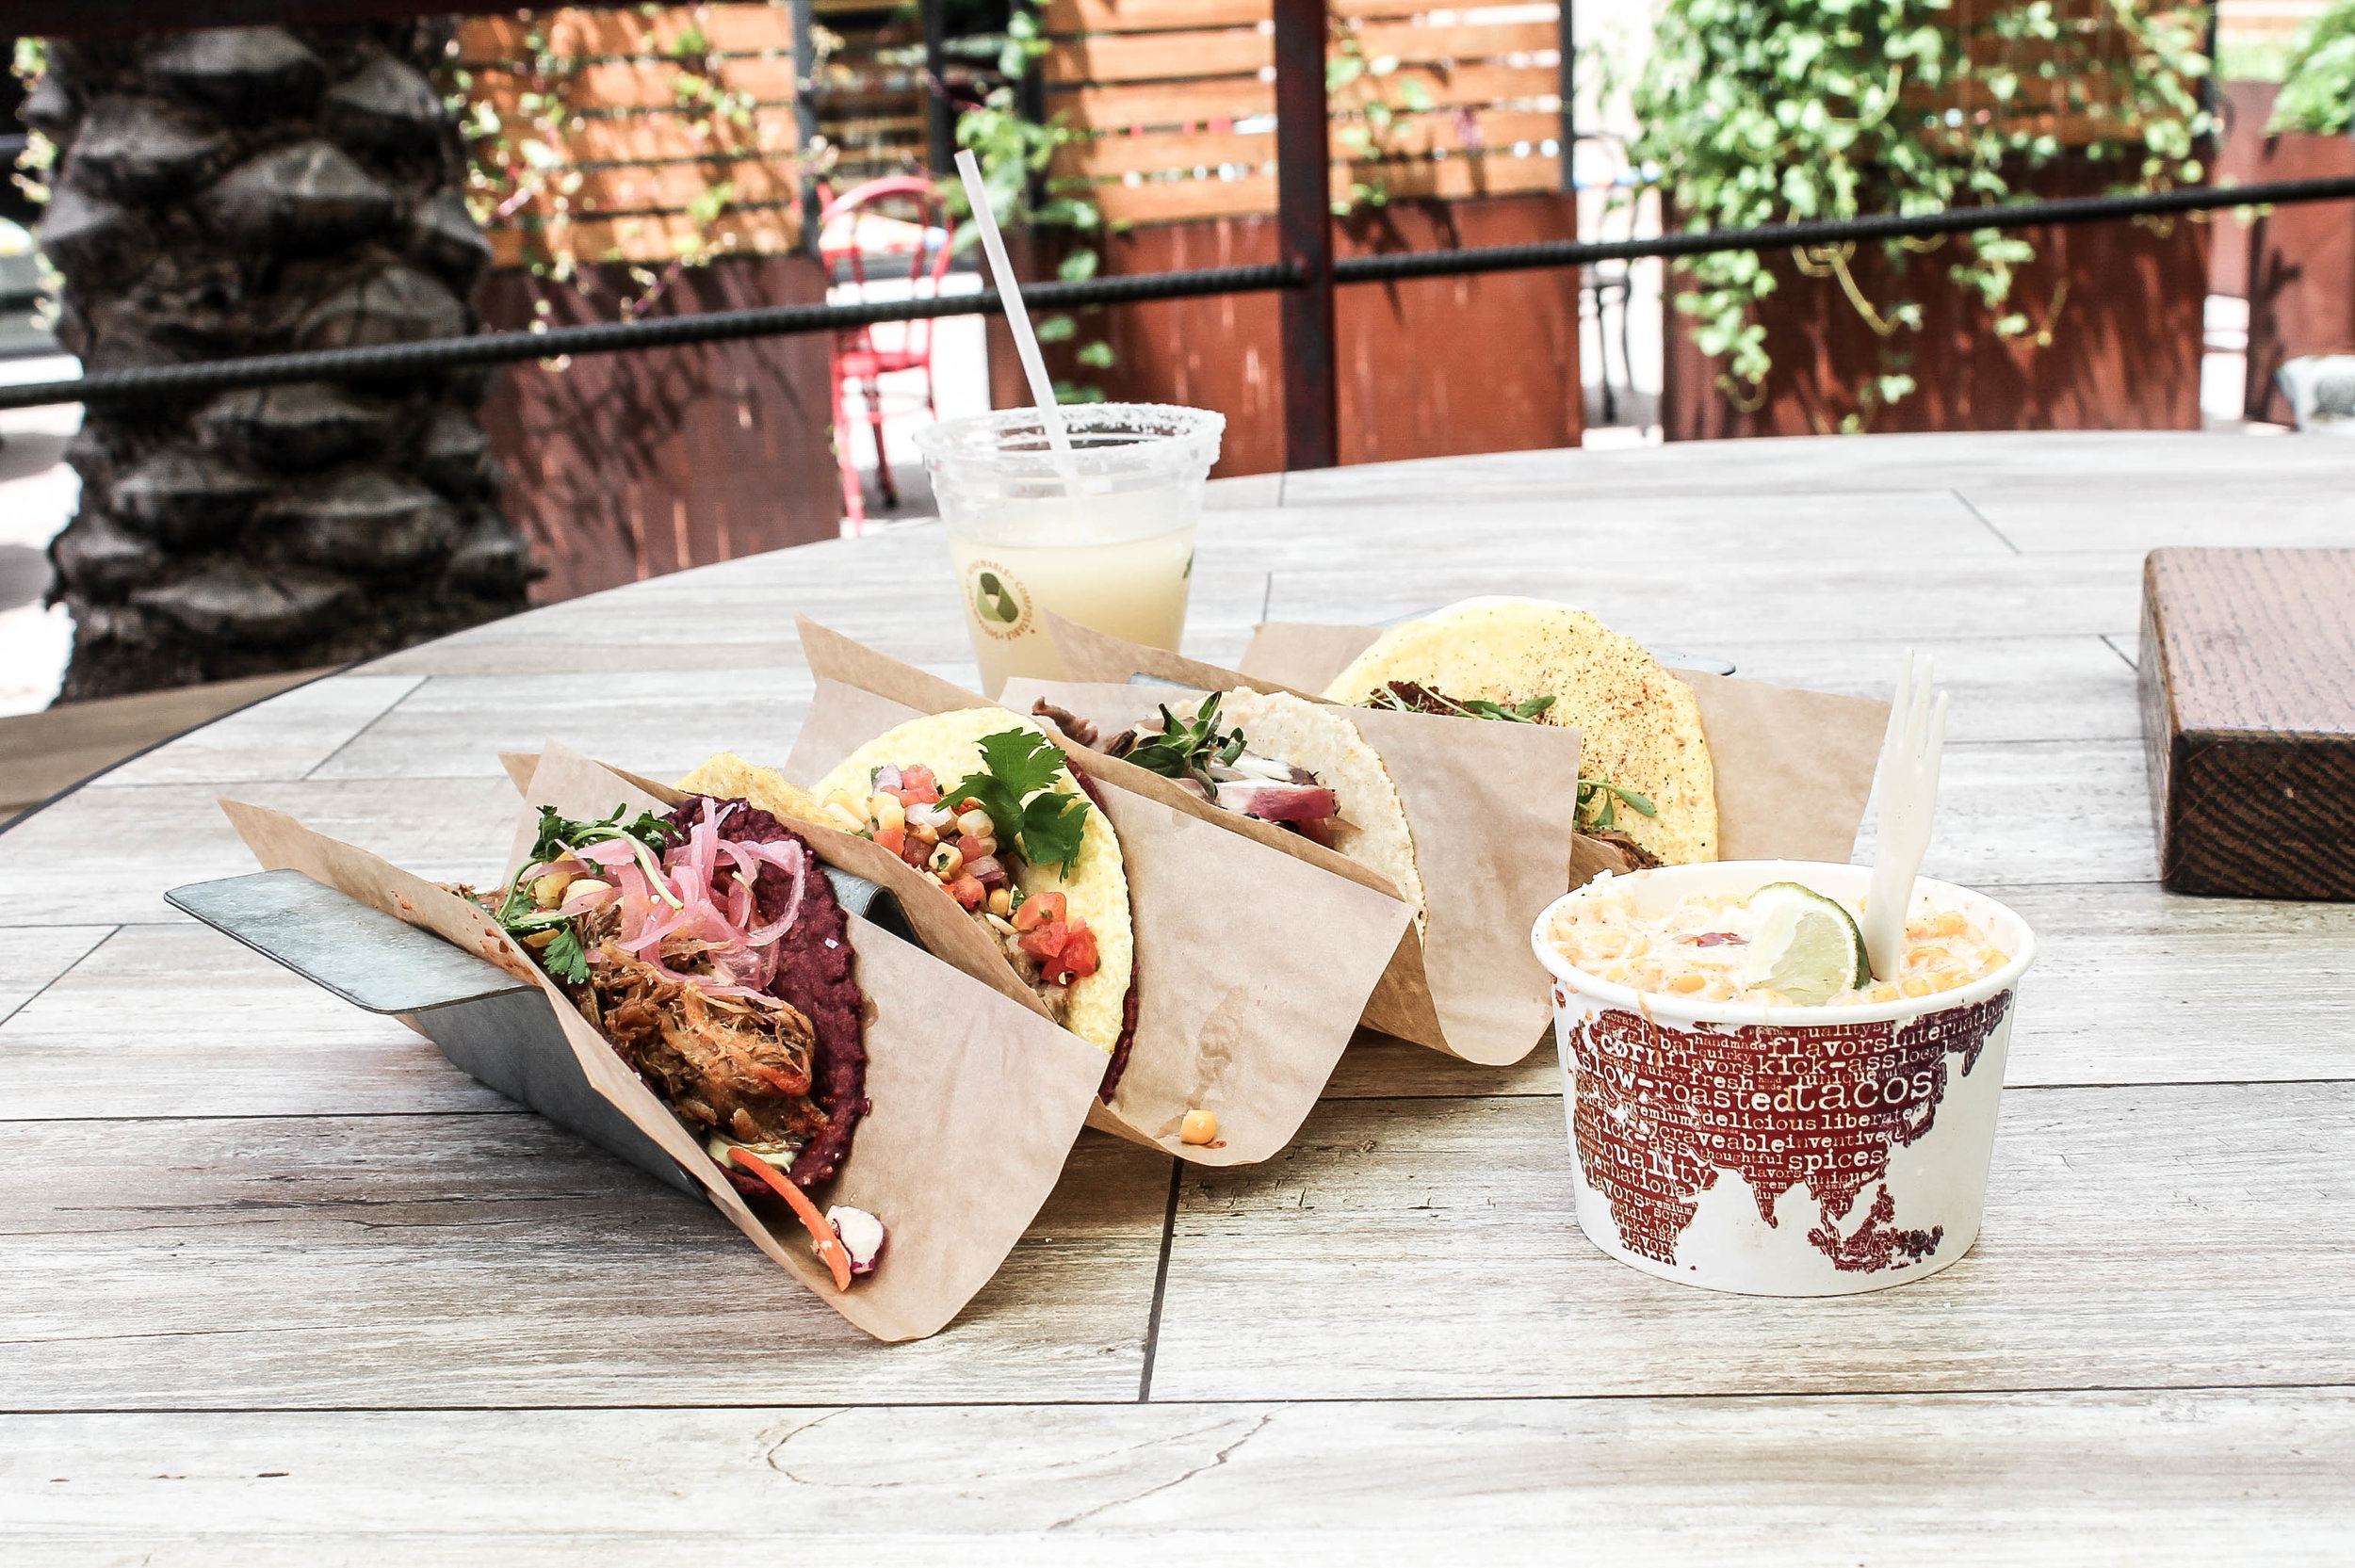 See the culprit lurking behind those scrumptious tacos?